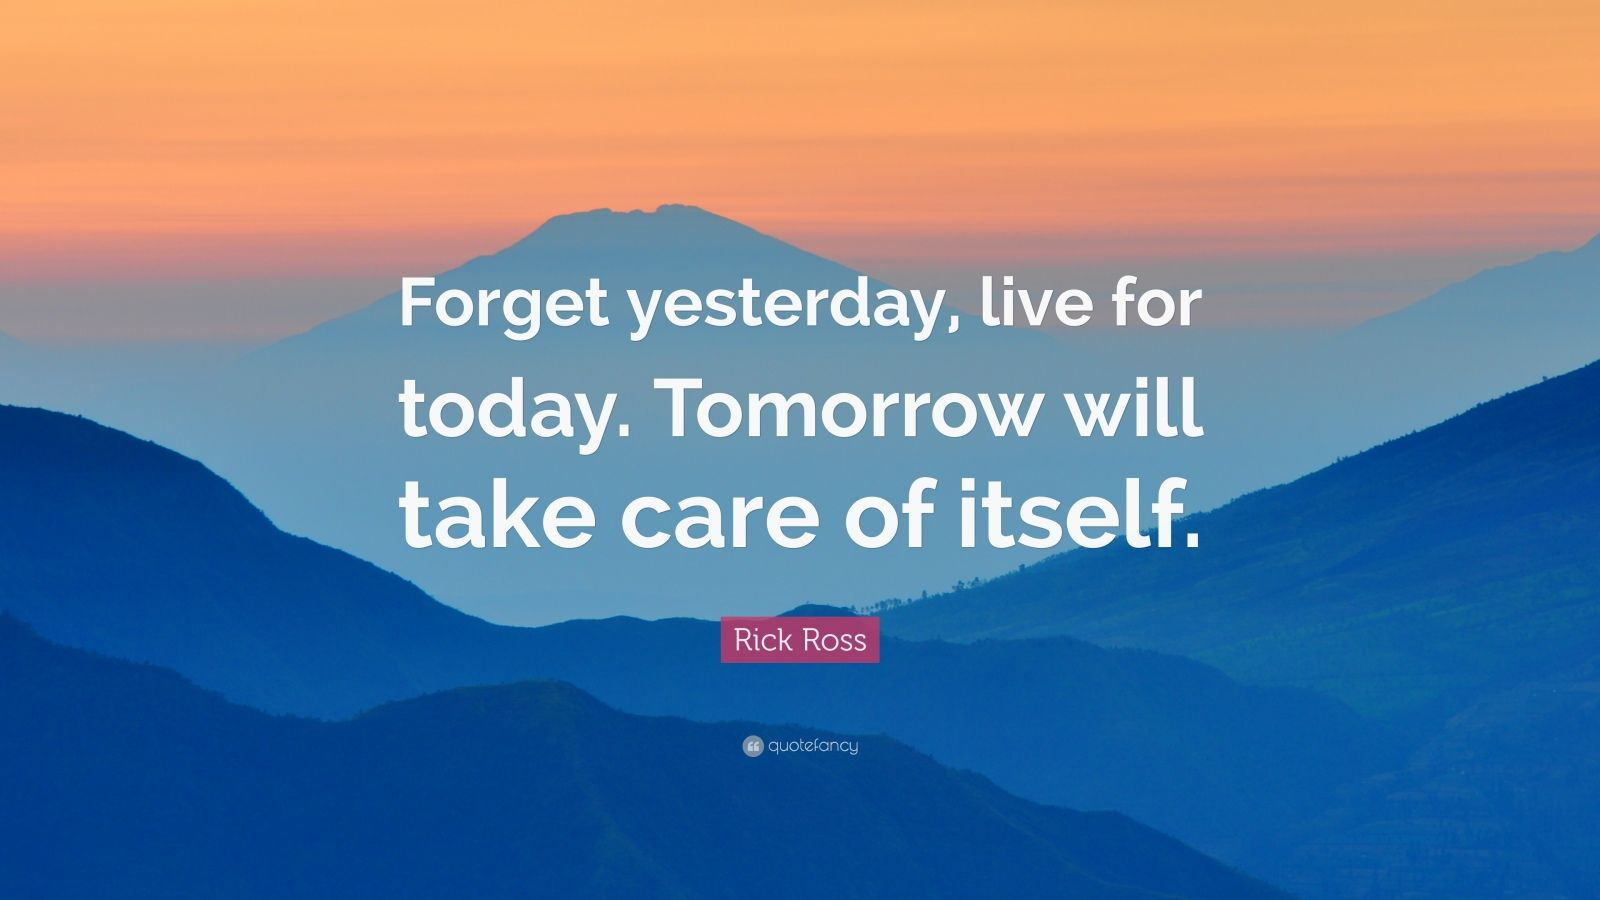 """do care of today tomorrow will take care of itself Rick ross quote: """"forget yesterday, live for today tomorrow will take care of itself """" forget yesterday, live for today tomorrow will take care of itself."""